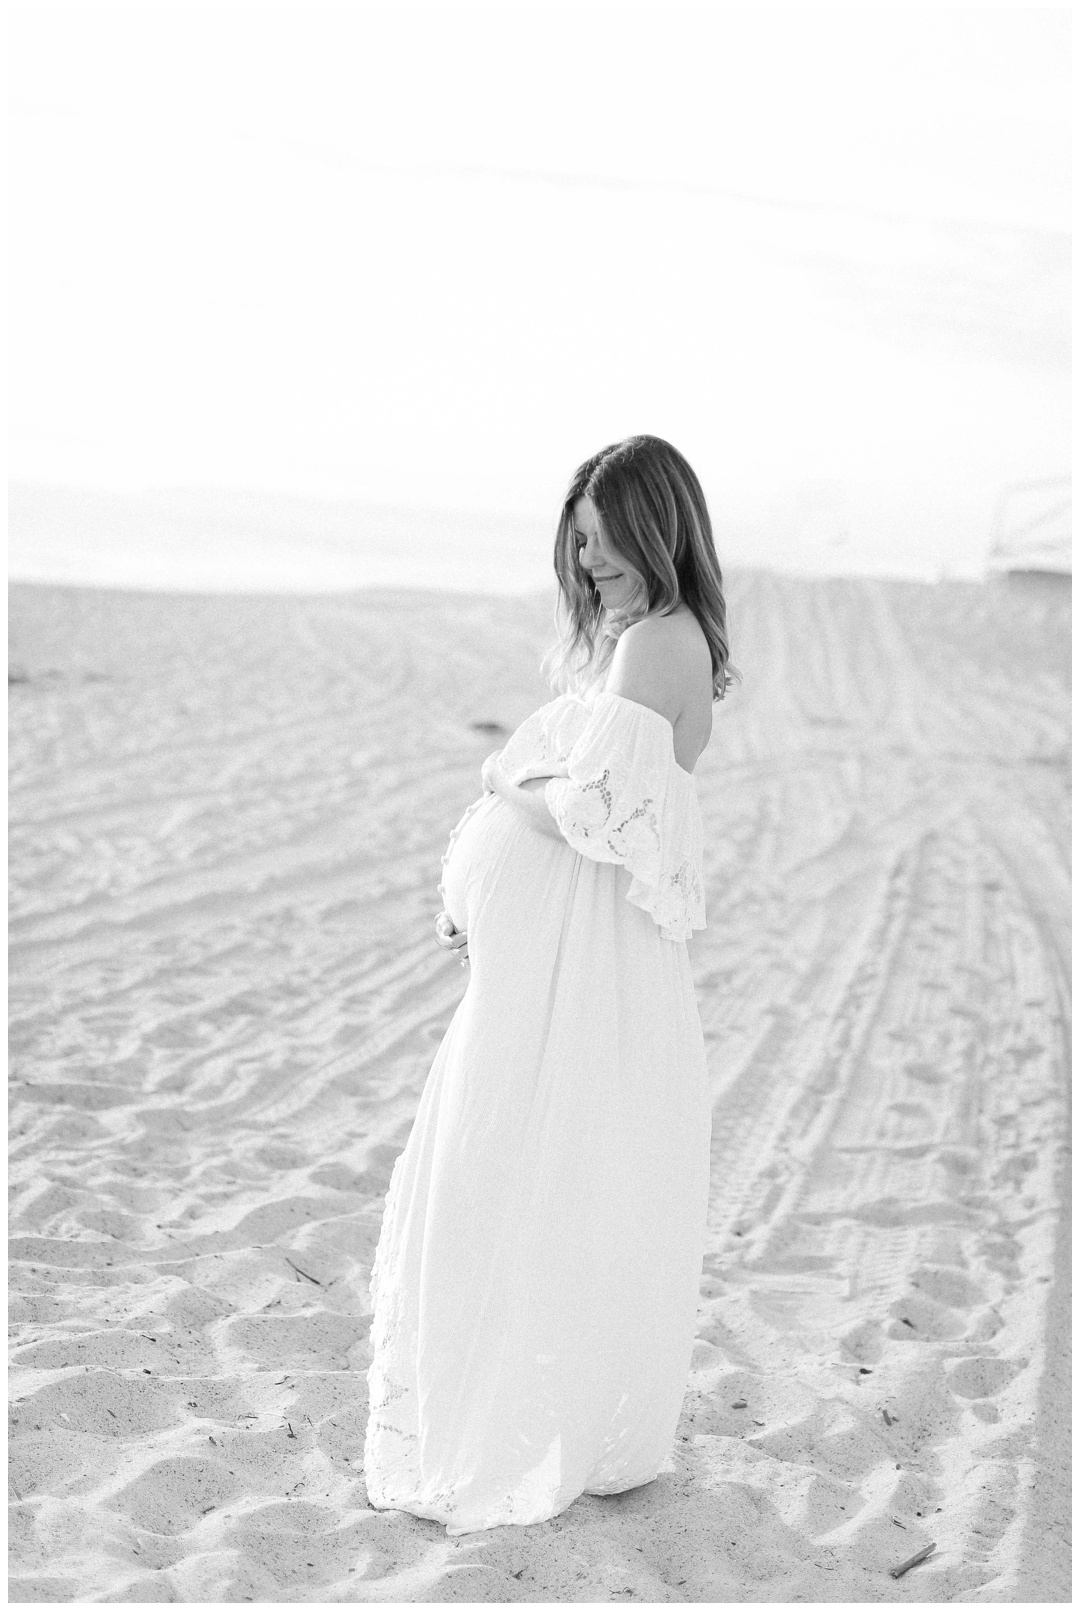 Newport_Beach_Maternity_Photographer_Newport_Beach_Newborn_Photographer_Orange_County_Newborn_Photographer_Cori_Kleckner_Photography_Orange_County_San_Clemente_Maternity_Session_Photography__2249.jpg